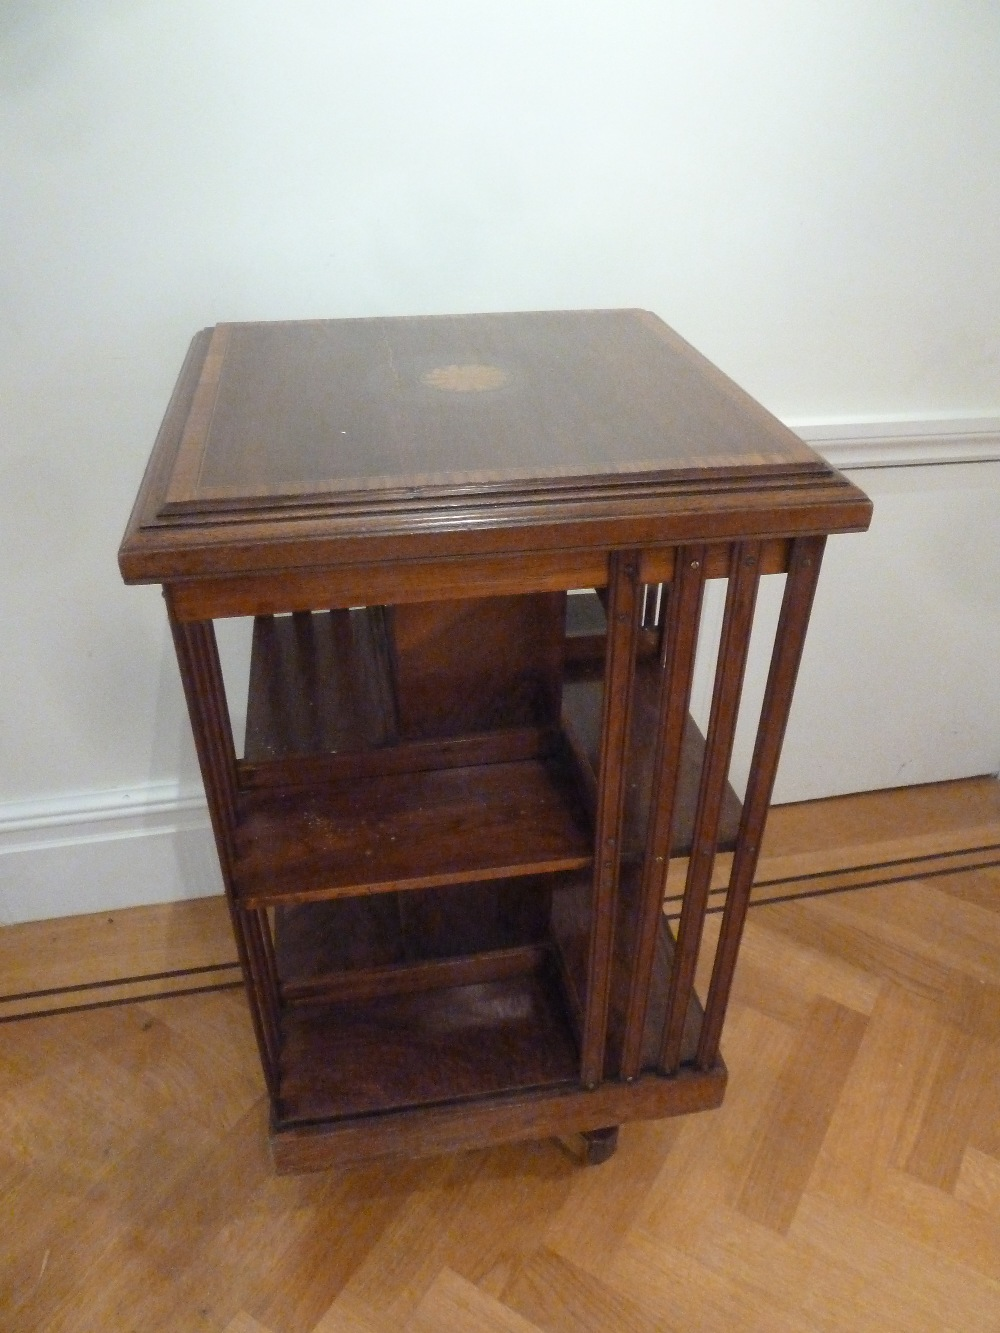 Lot 23 - An Edwardian mahogany inlaid revolving rectangular book stand